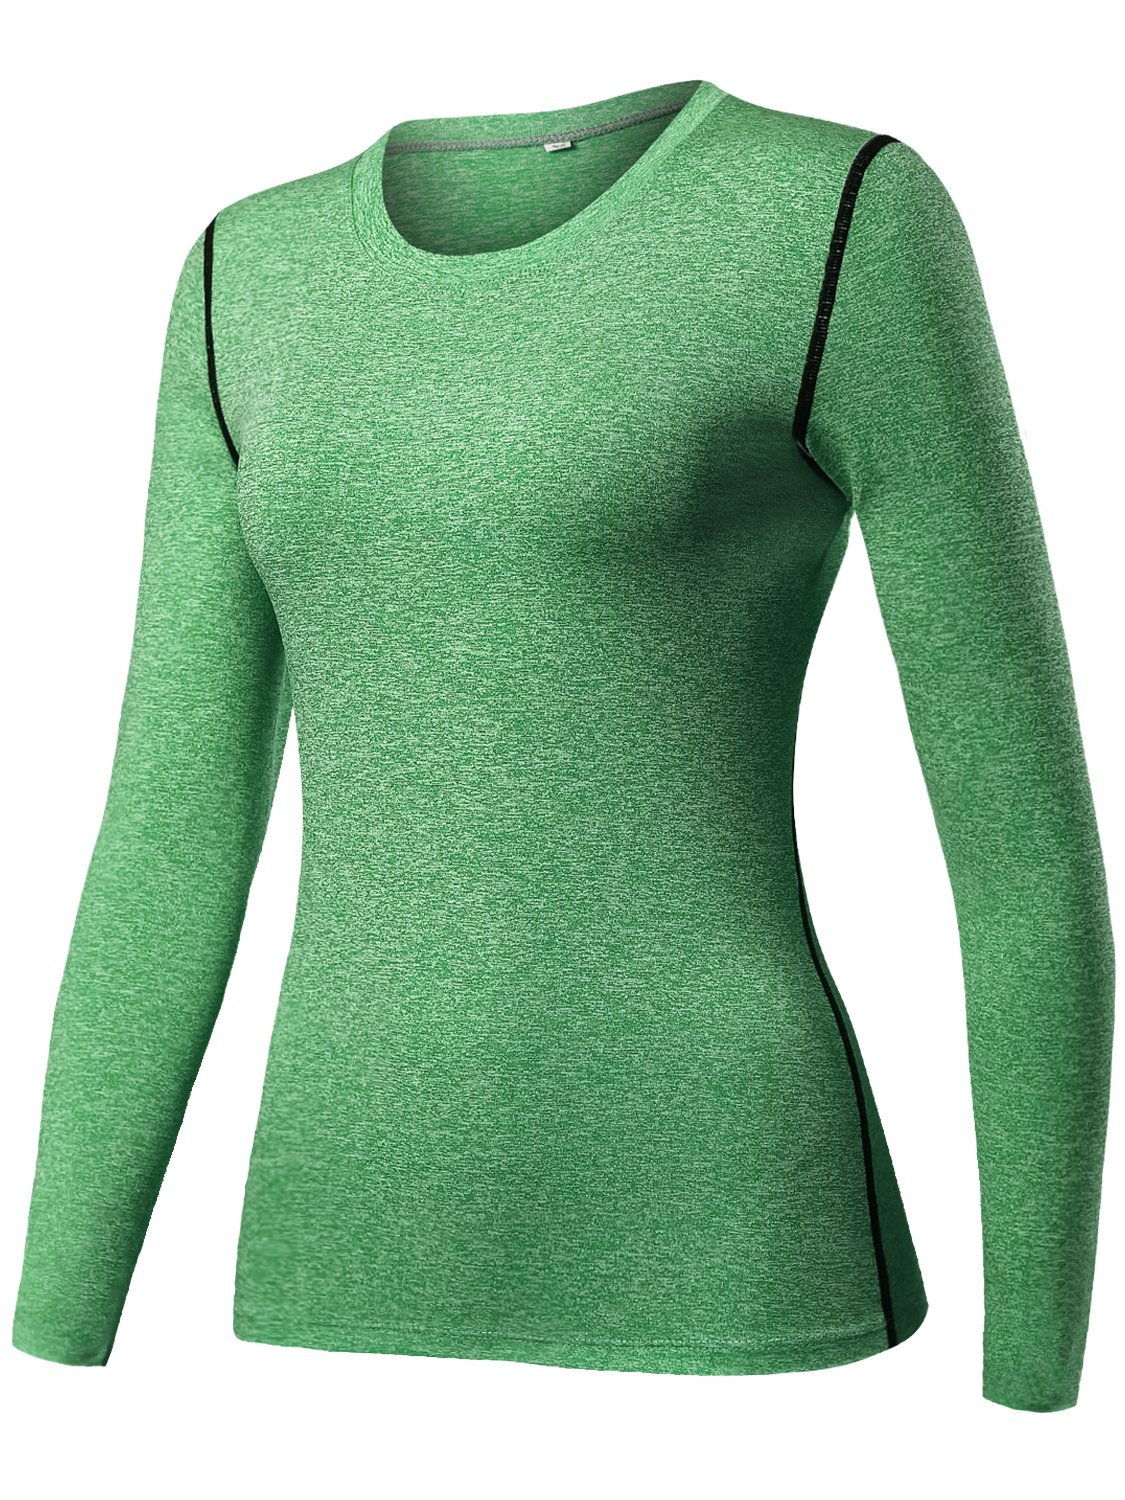 Lavento Women's Compression Shirt Sport Performance Crewneck Long-Sleeve T Shirt(X-Large,1 Pack-8020 Heather Green) by Lavento